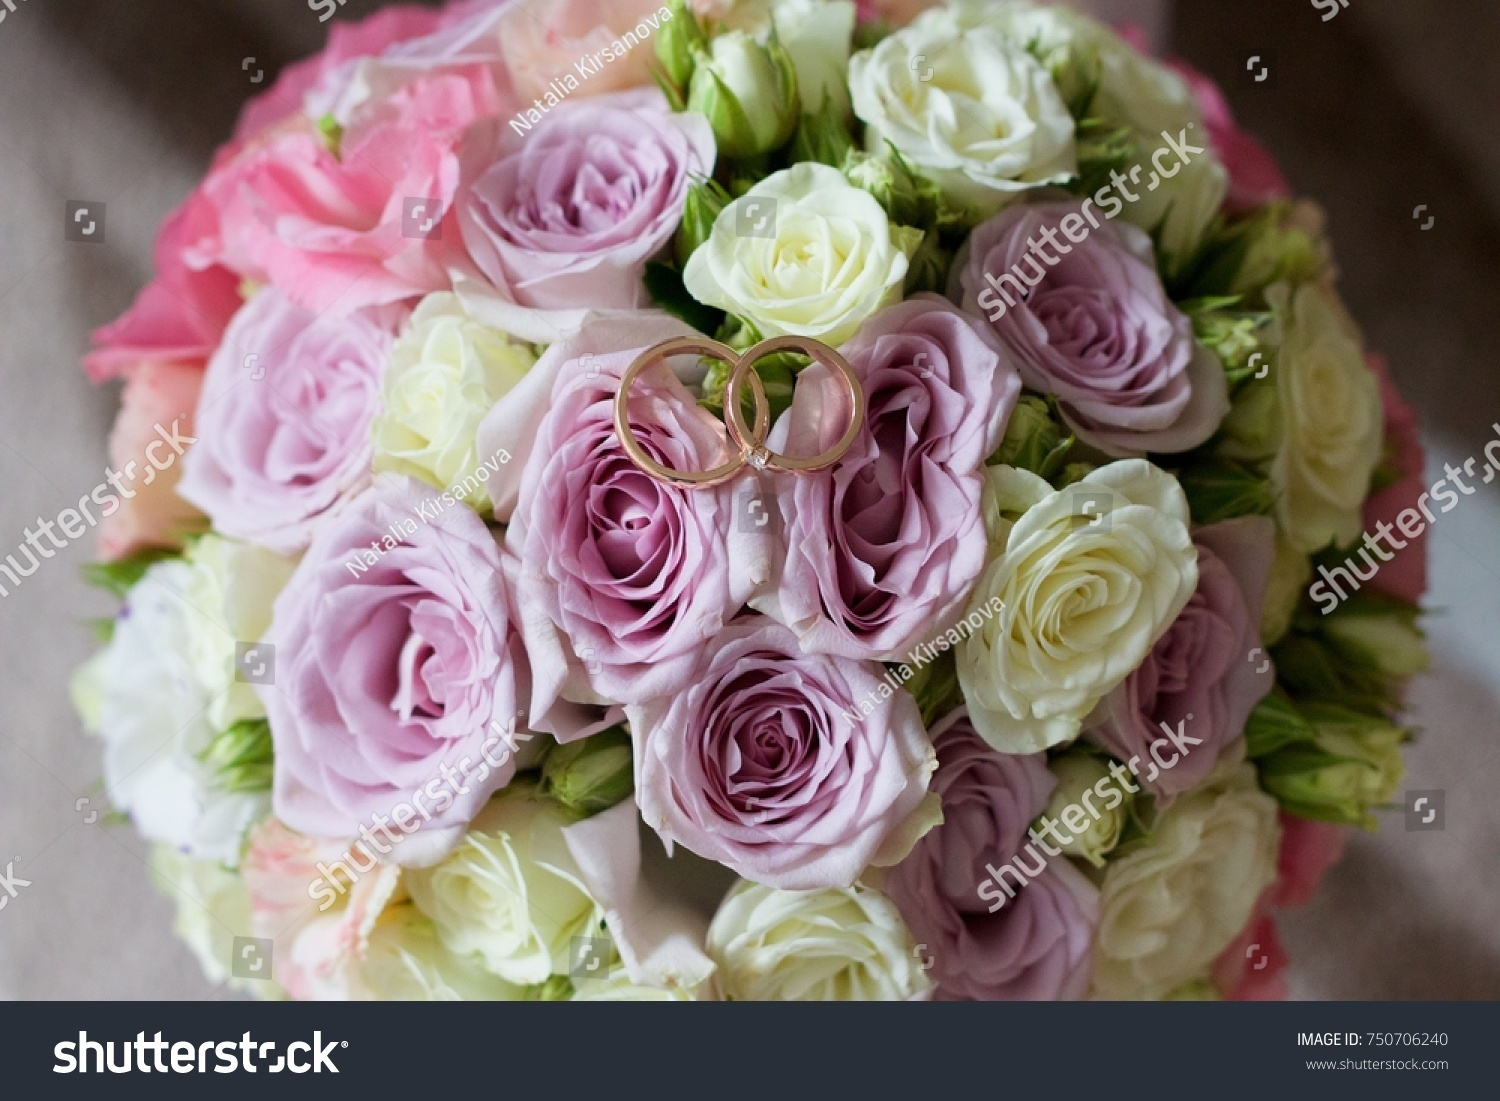 Engagement Rings Wedding Bouquet Flowers Stock Photo (Royalty Free ...